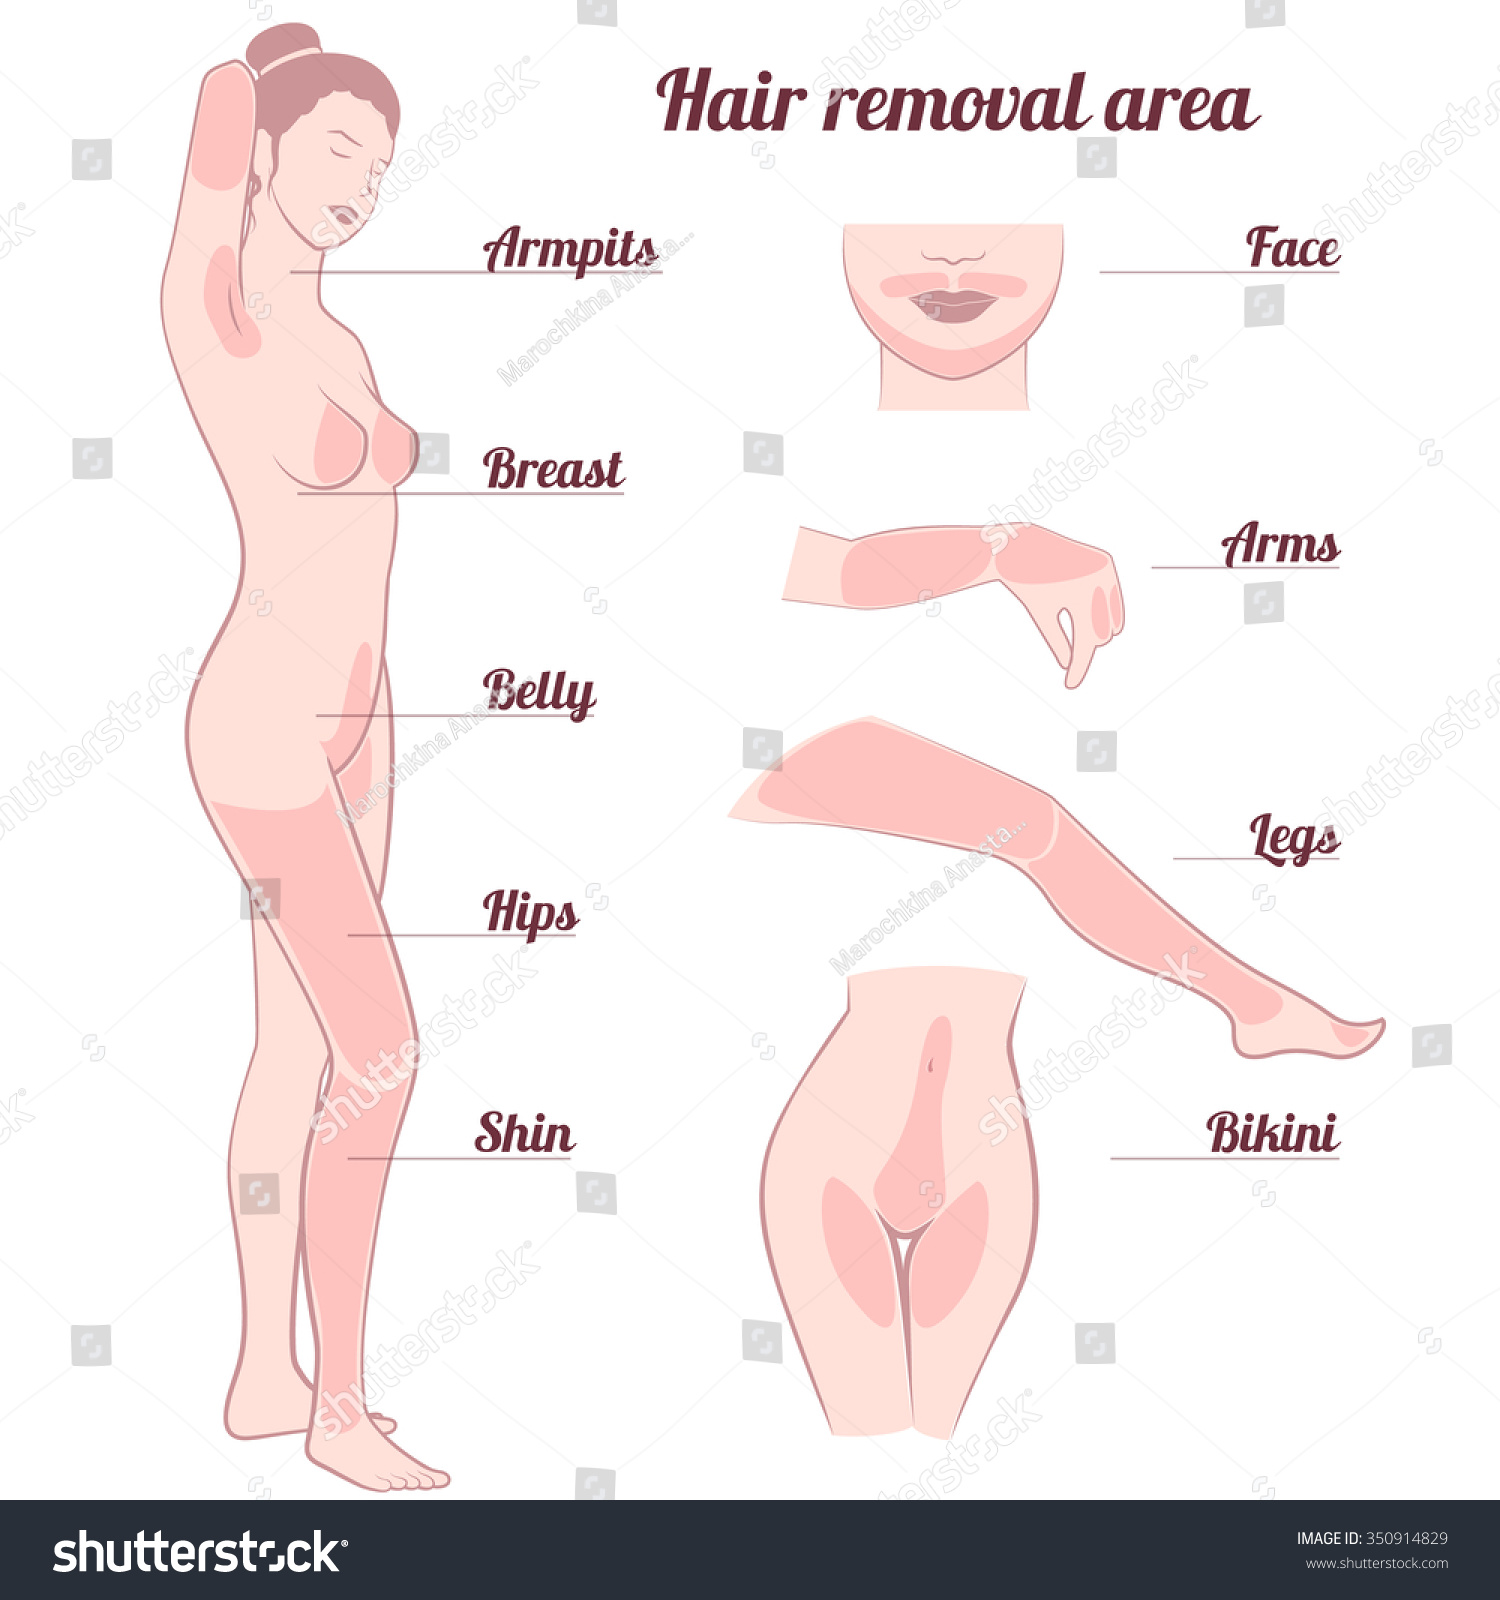 Area Hair Removal Naked Girl Full   350914829 -5480